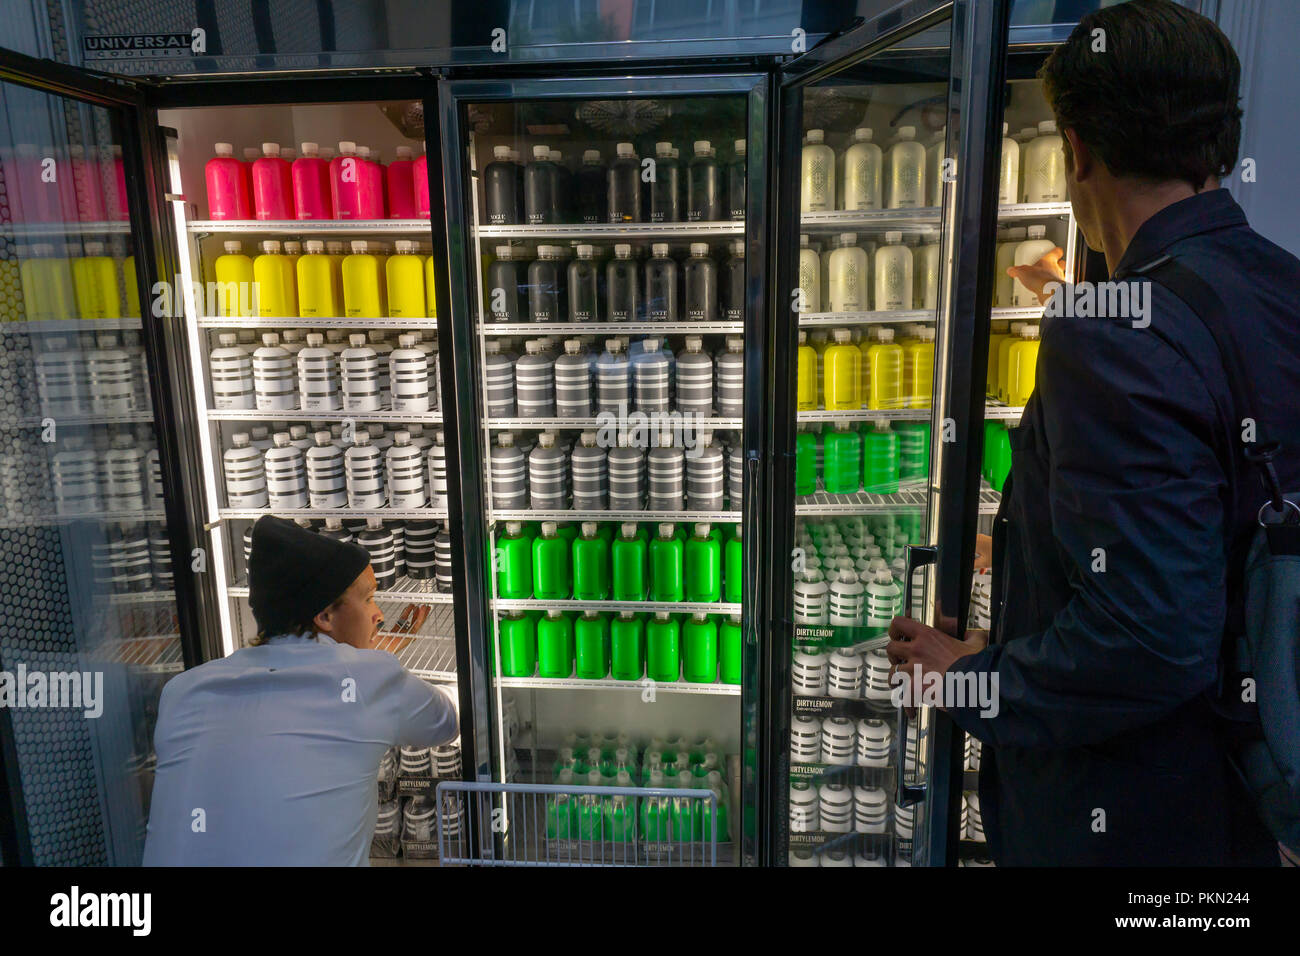 New York, USA. 14th September 2018. A worker stocks the shelves as a customer makes his choice in the Dirty Lemon beverage store in New York on Friday, September 14, 2018. The store called 'The Drug Store' in the Tribeca neighborhood operates on the honor system where after you make your choice you text the company and they charge your pre-set up account.  All the beverages are based on lemon-flavored water with collagen, rose water, magnesium or other ingredients added to the various flavors in the better- Credit: Richard Levine/Alamy Live News - Stock Image